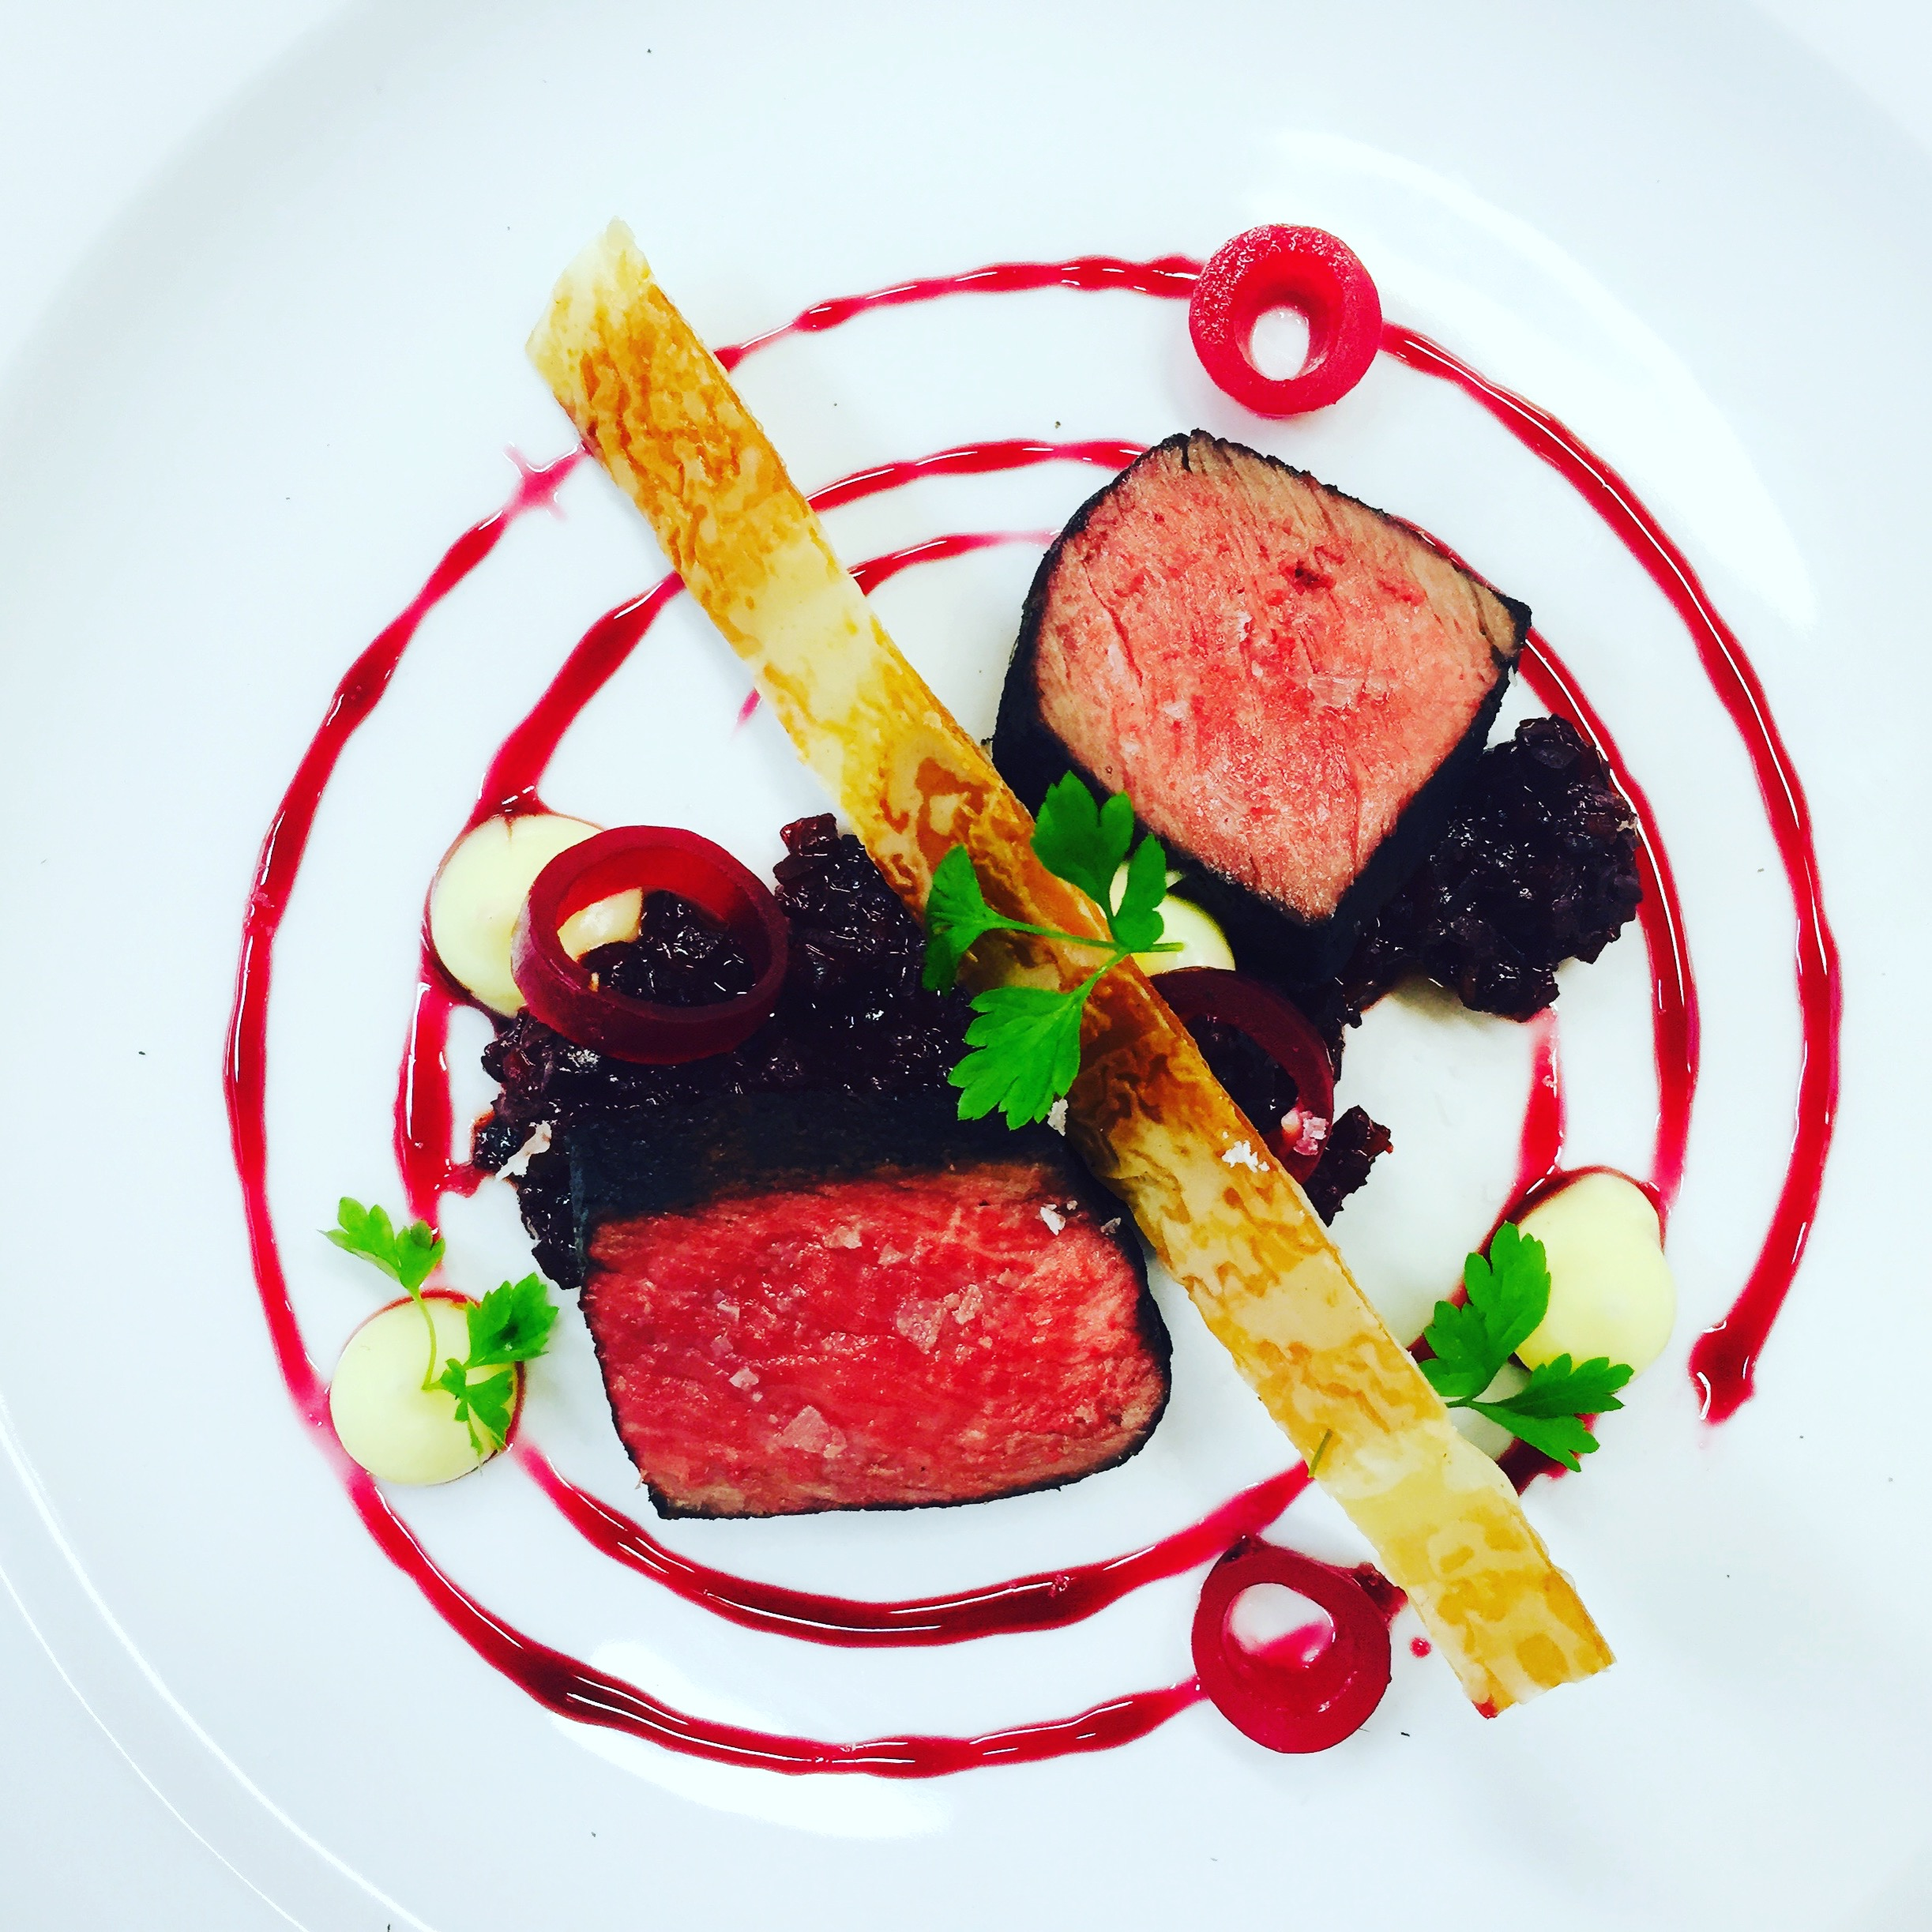 Venison Strip Loin